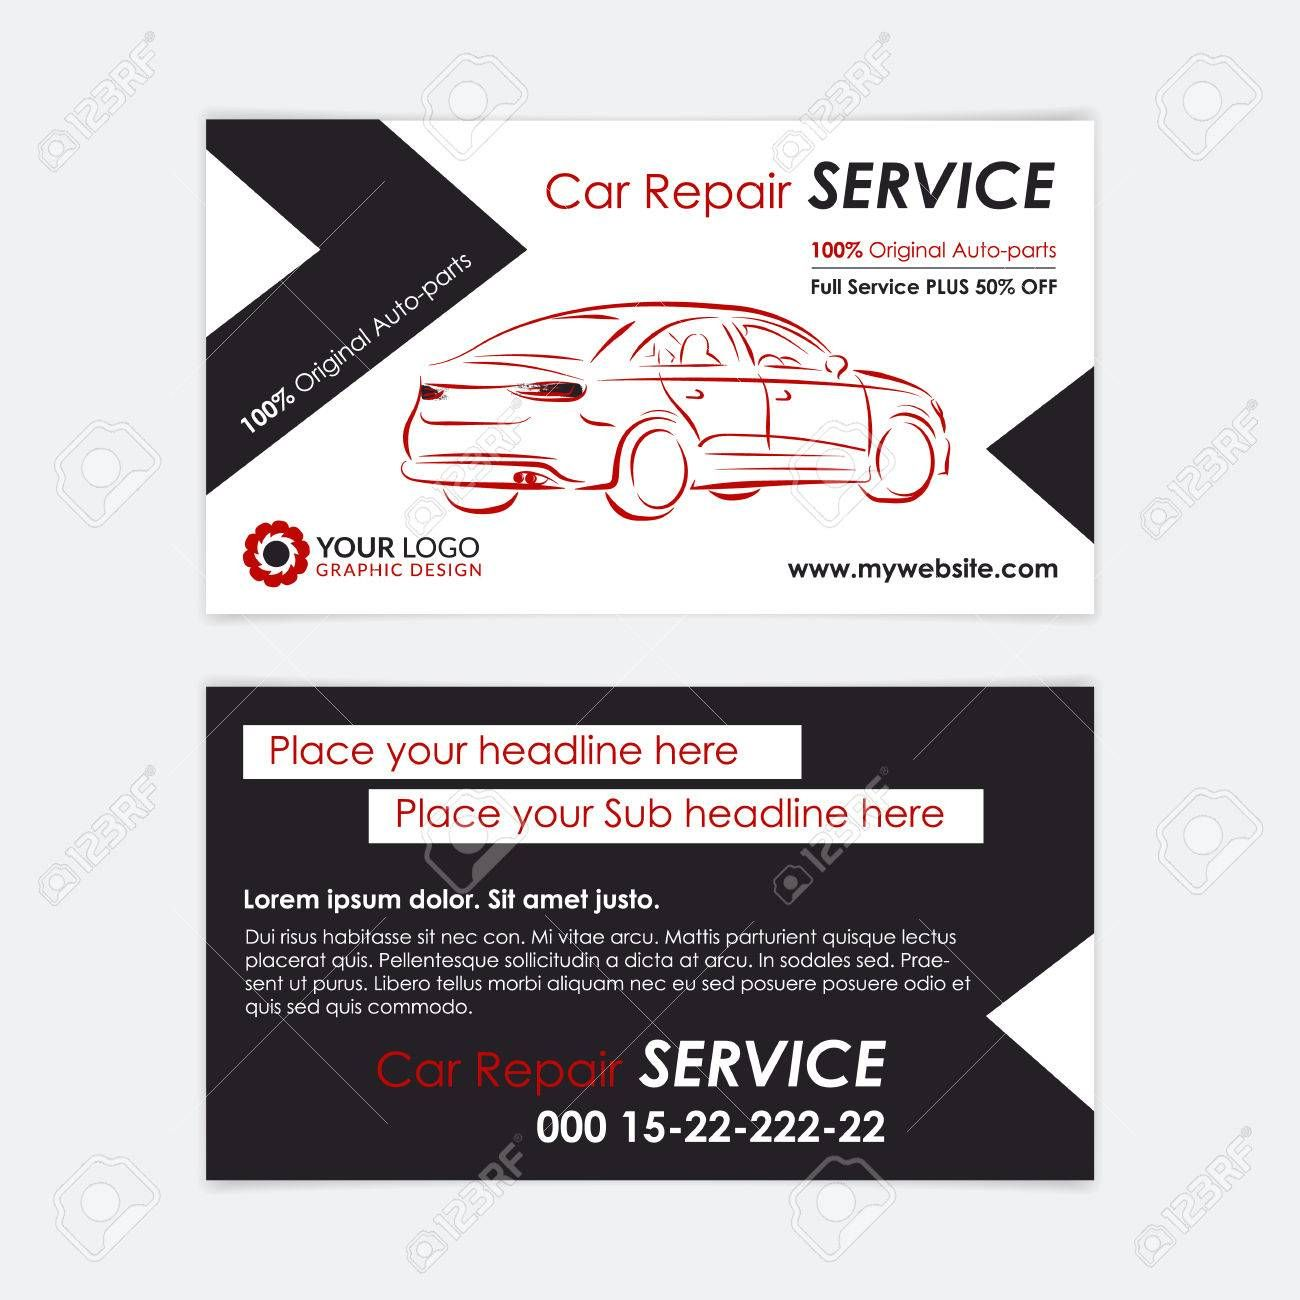 The Mesmerizing Auto Repair Business Card Template Create Your Own Business With Regard Free Business Card Templates Card Templates Create Your Own Business